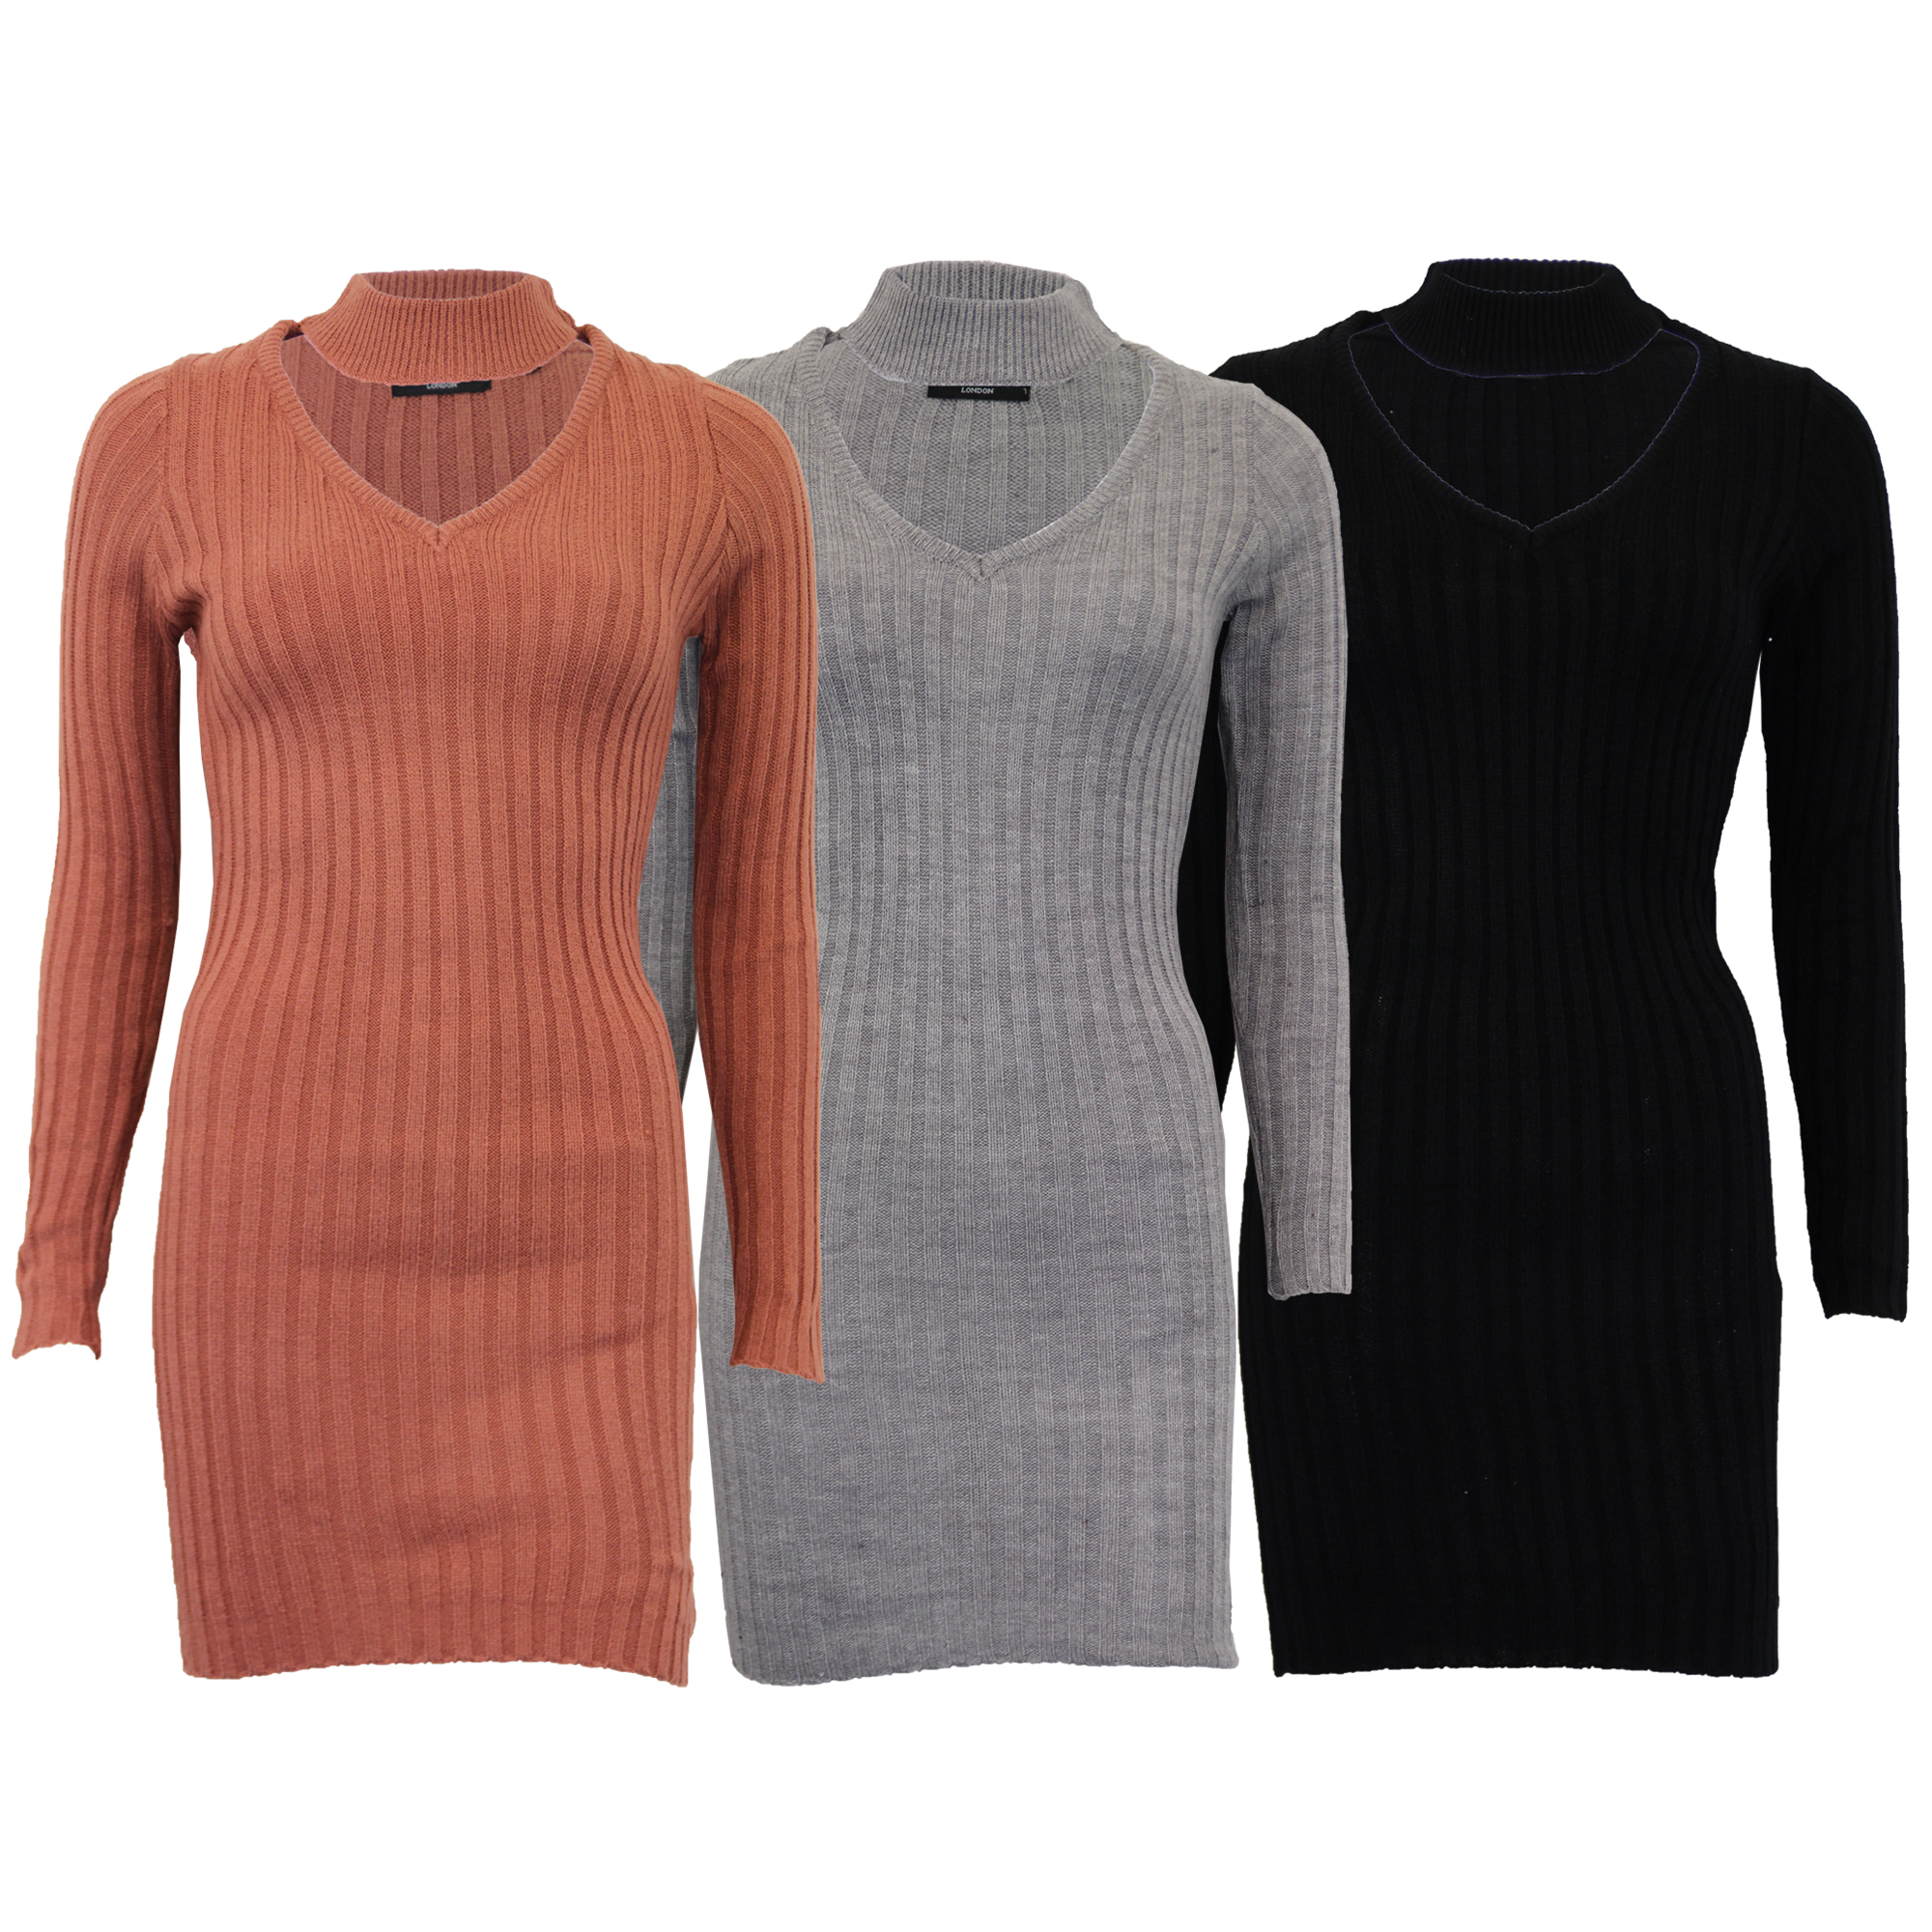 75c32d99143d Ladies Jumpers Brave Soul Womens Knitted Long Dress Choker Neck ...